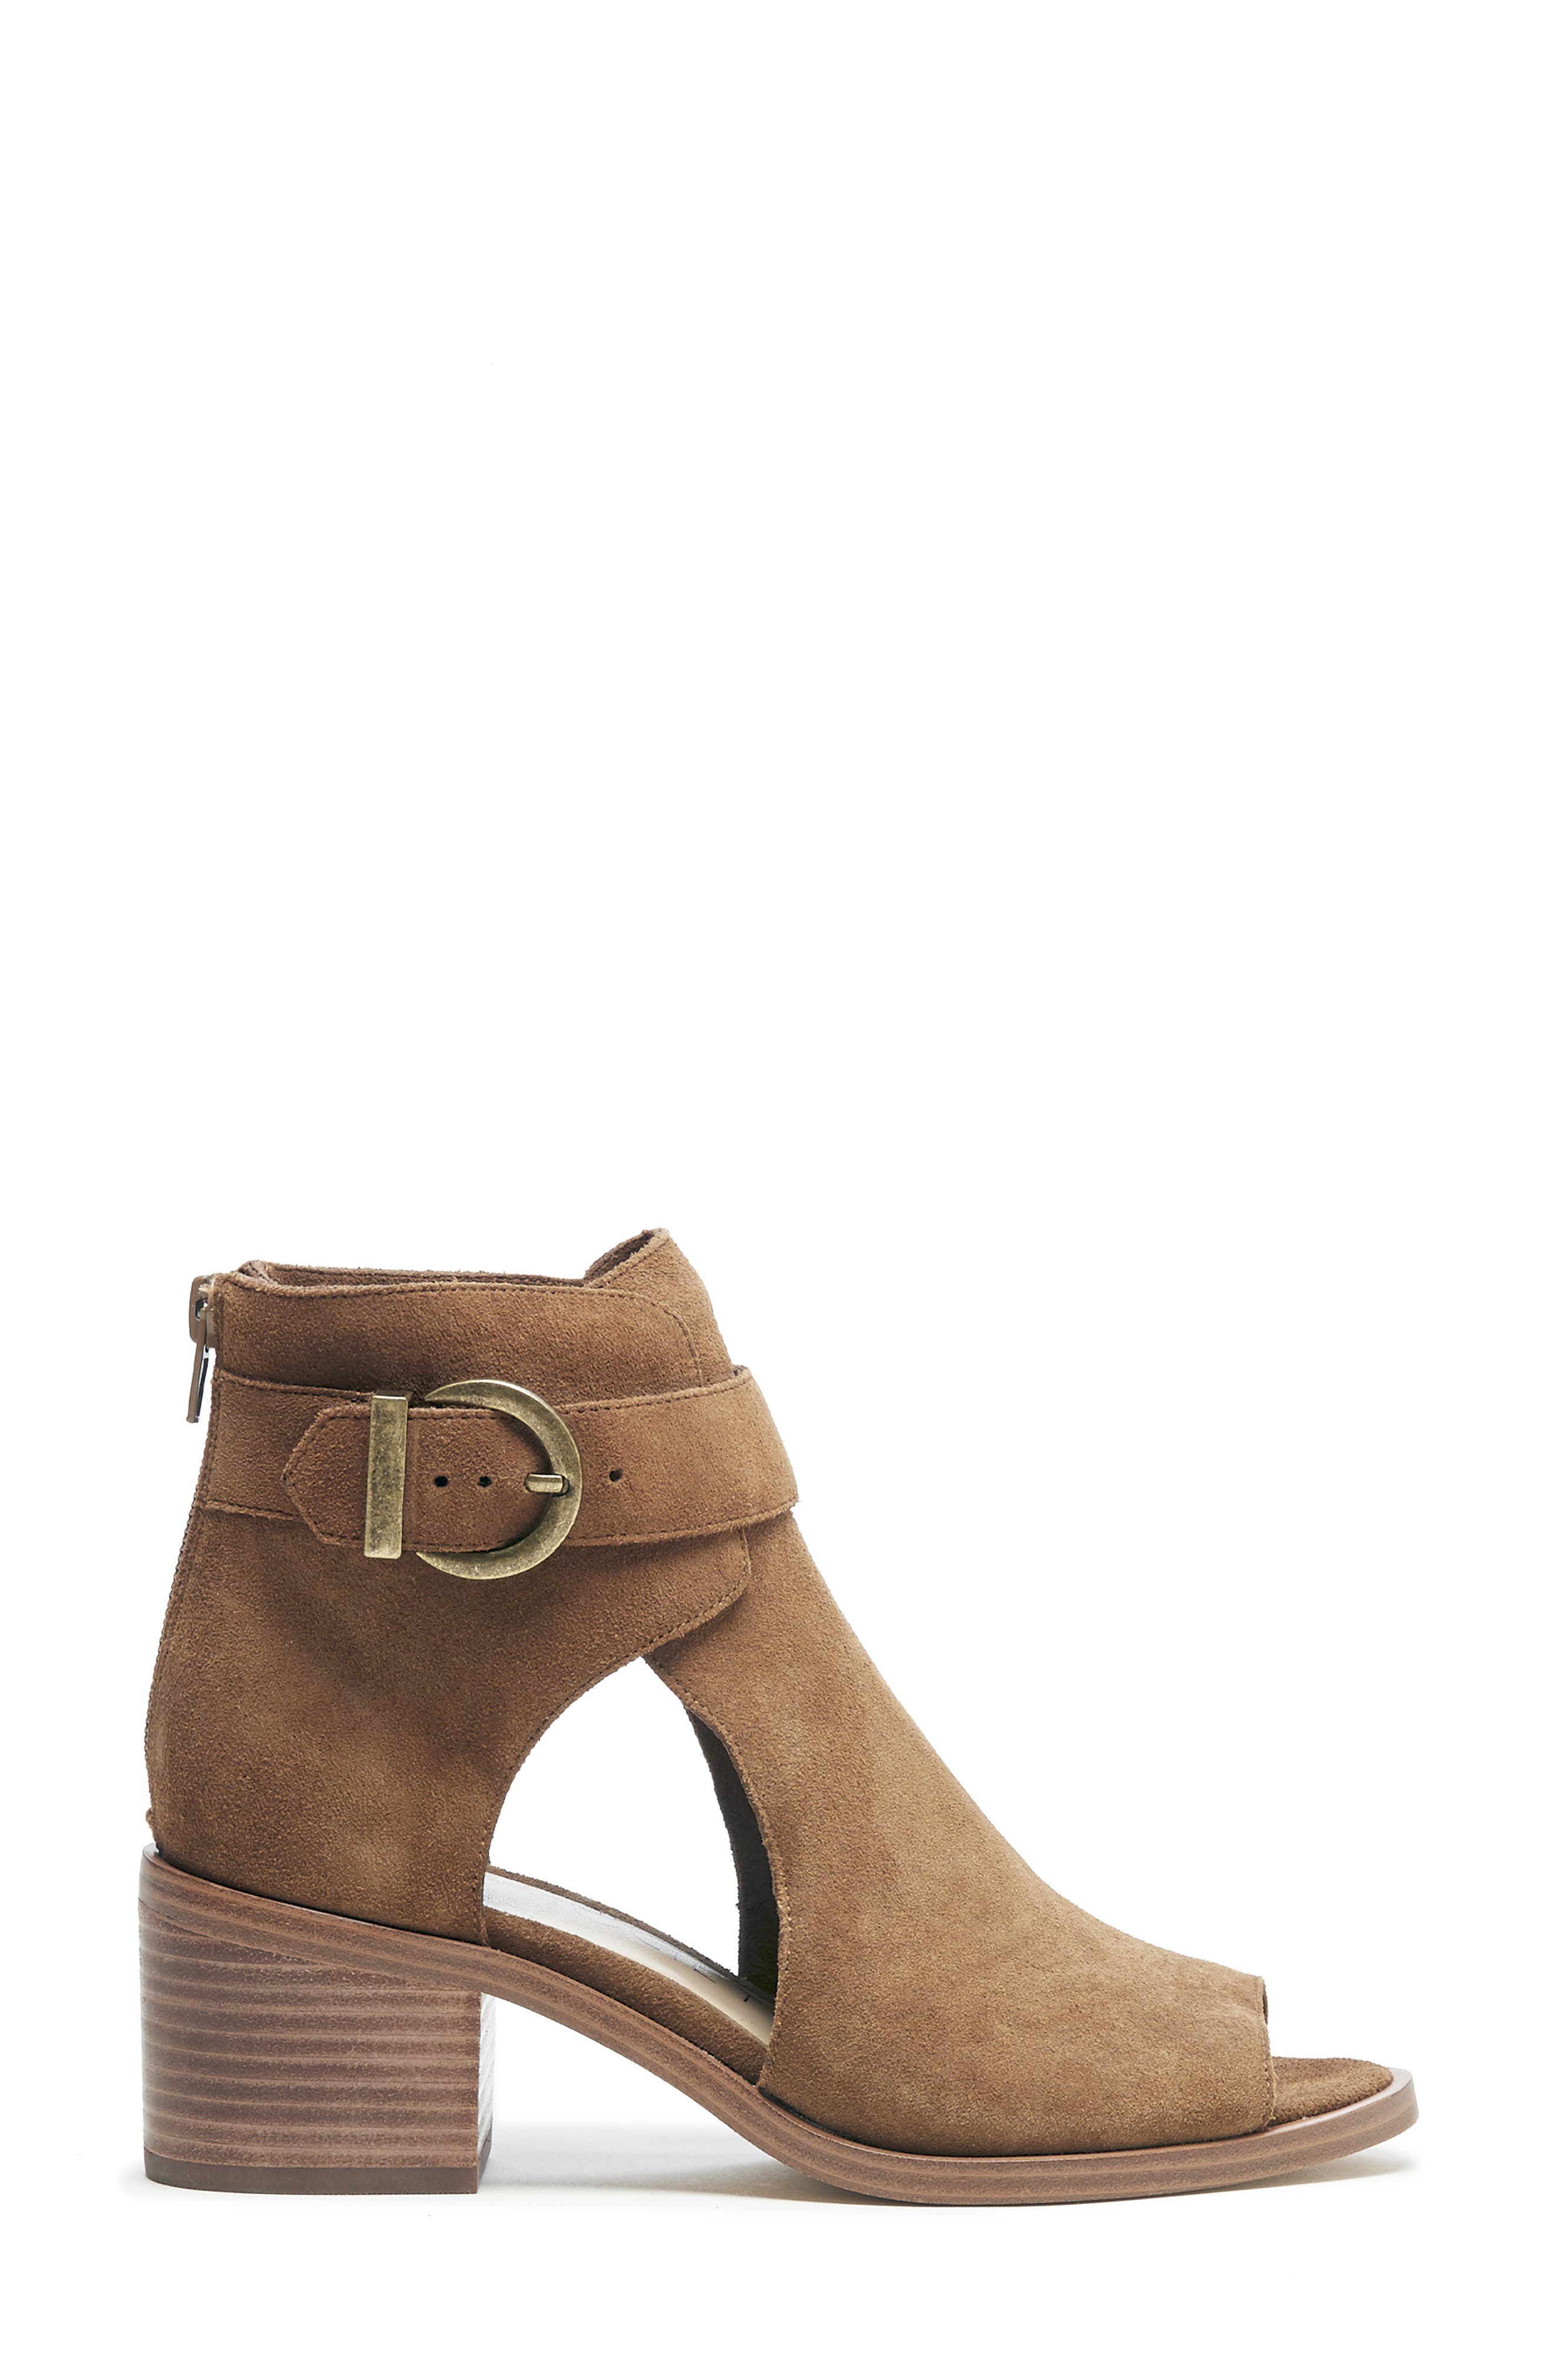 SOLE SOCIETY, Tracy Block Heel Sandal, Alternate thumbnail 2, color, TOBACCO SUEDE